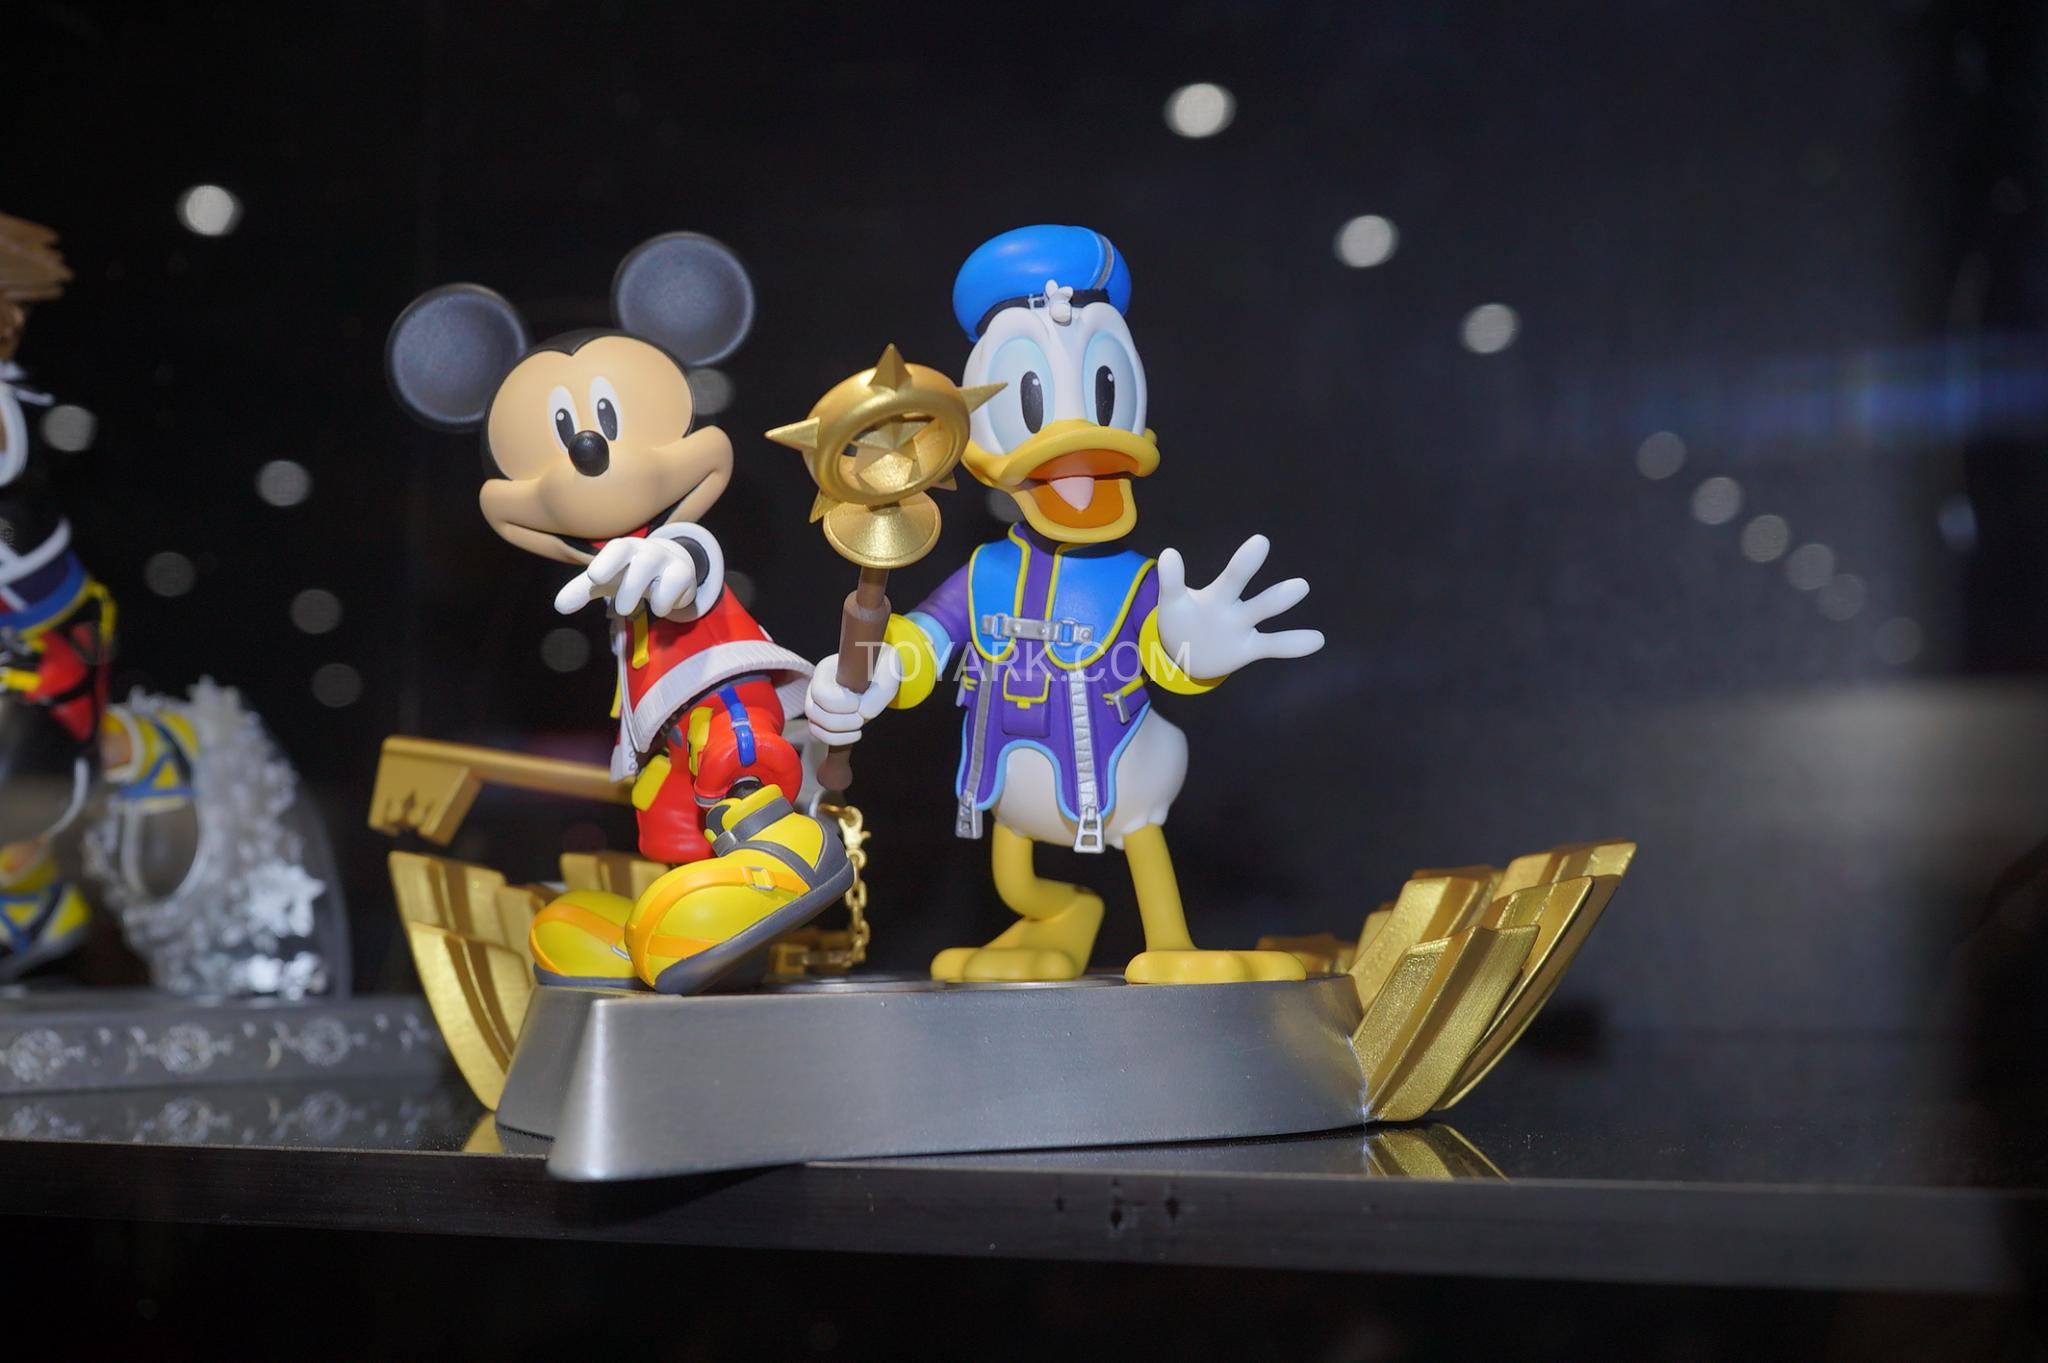 Disney Kingdom Hearts Mickey Mouse Donald Duck Gallery Figure Statue Exclusive